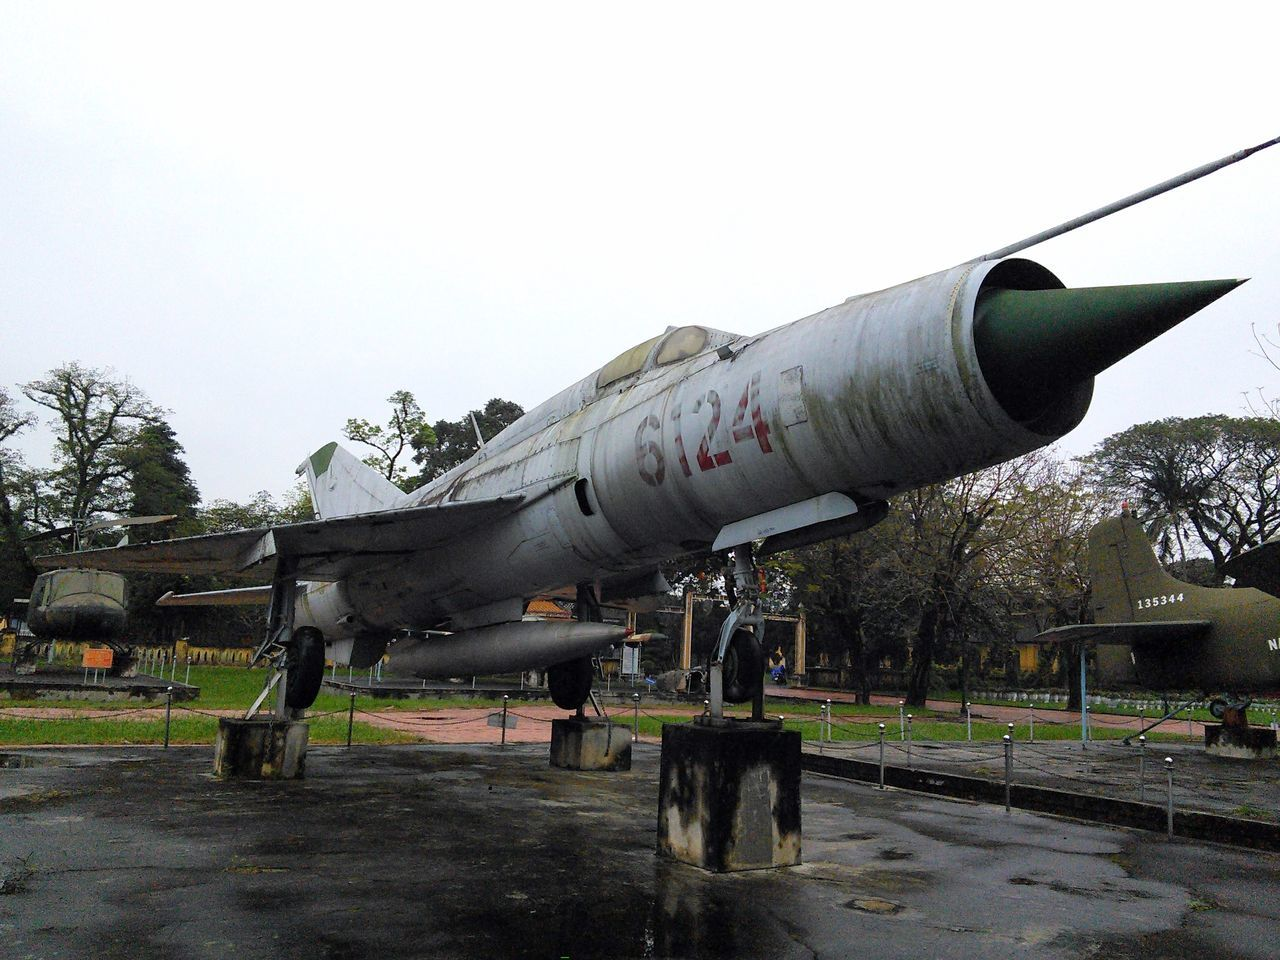 Air Vehicle Airplane American War Clear Sky Day Fighter Fighter Jet Fighter Jets Fighter Plane Hue Vietnam Military Nature No People Outdoors Plane Sky Tree Vacations Vietnam Vietnam War Vietnam War Era Vietnam War Memorial Vietnam War Museum War Weapon